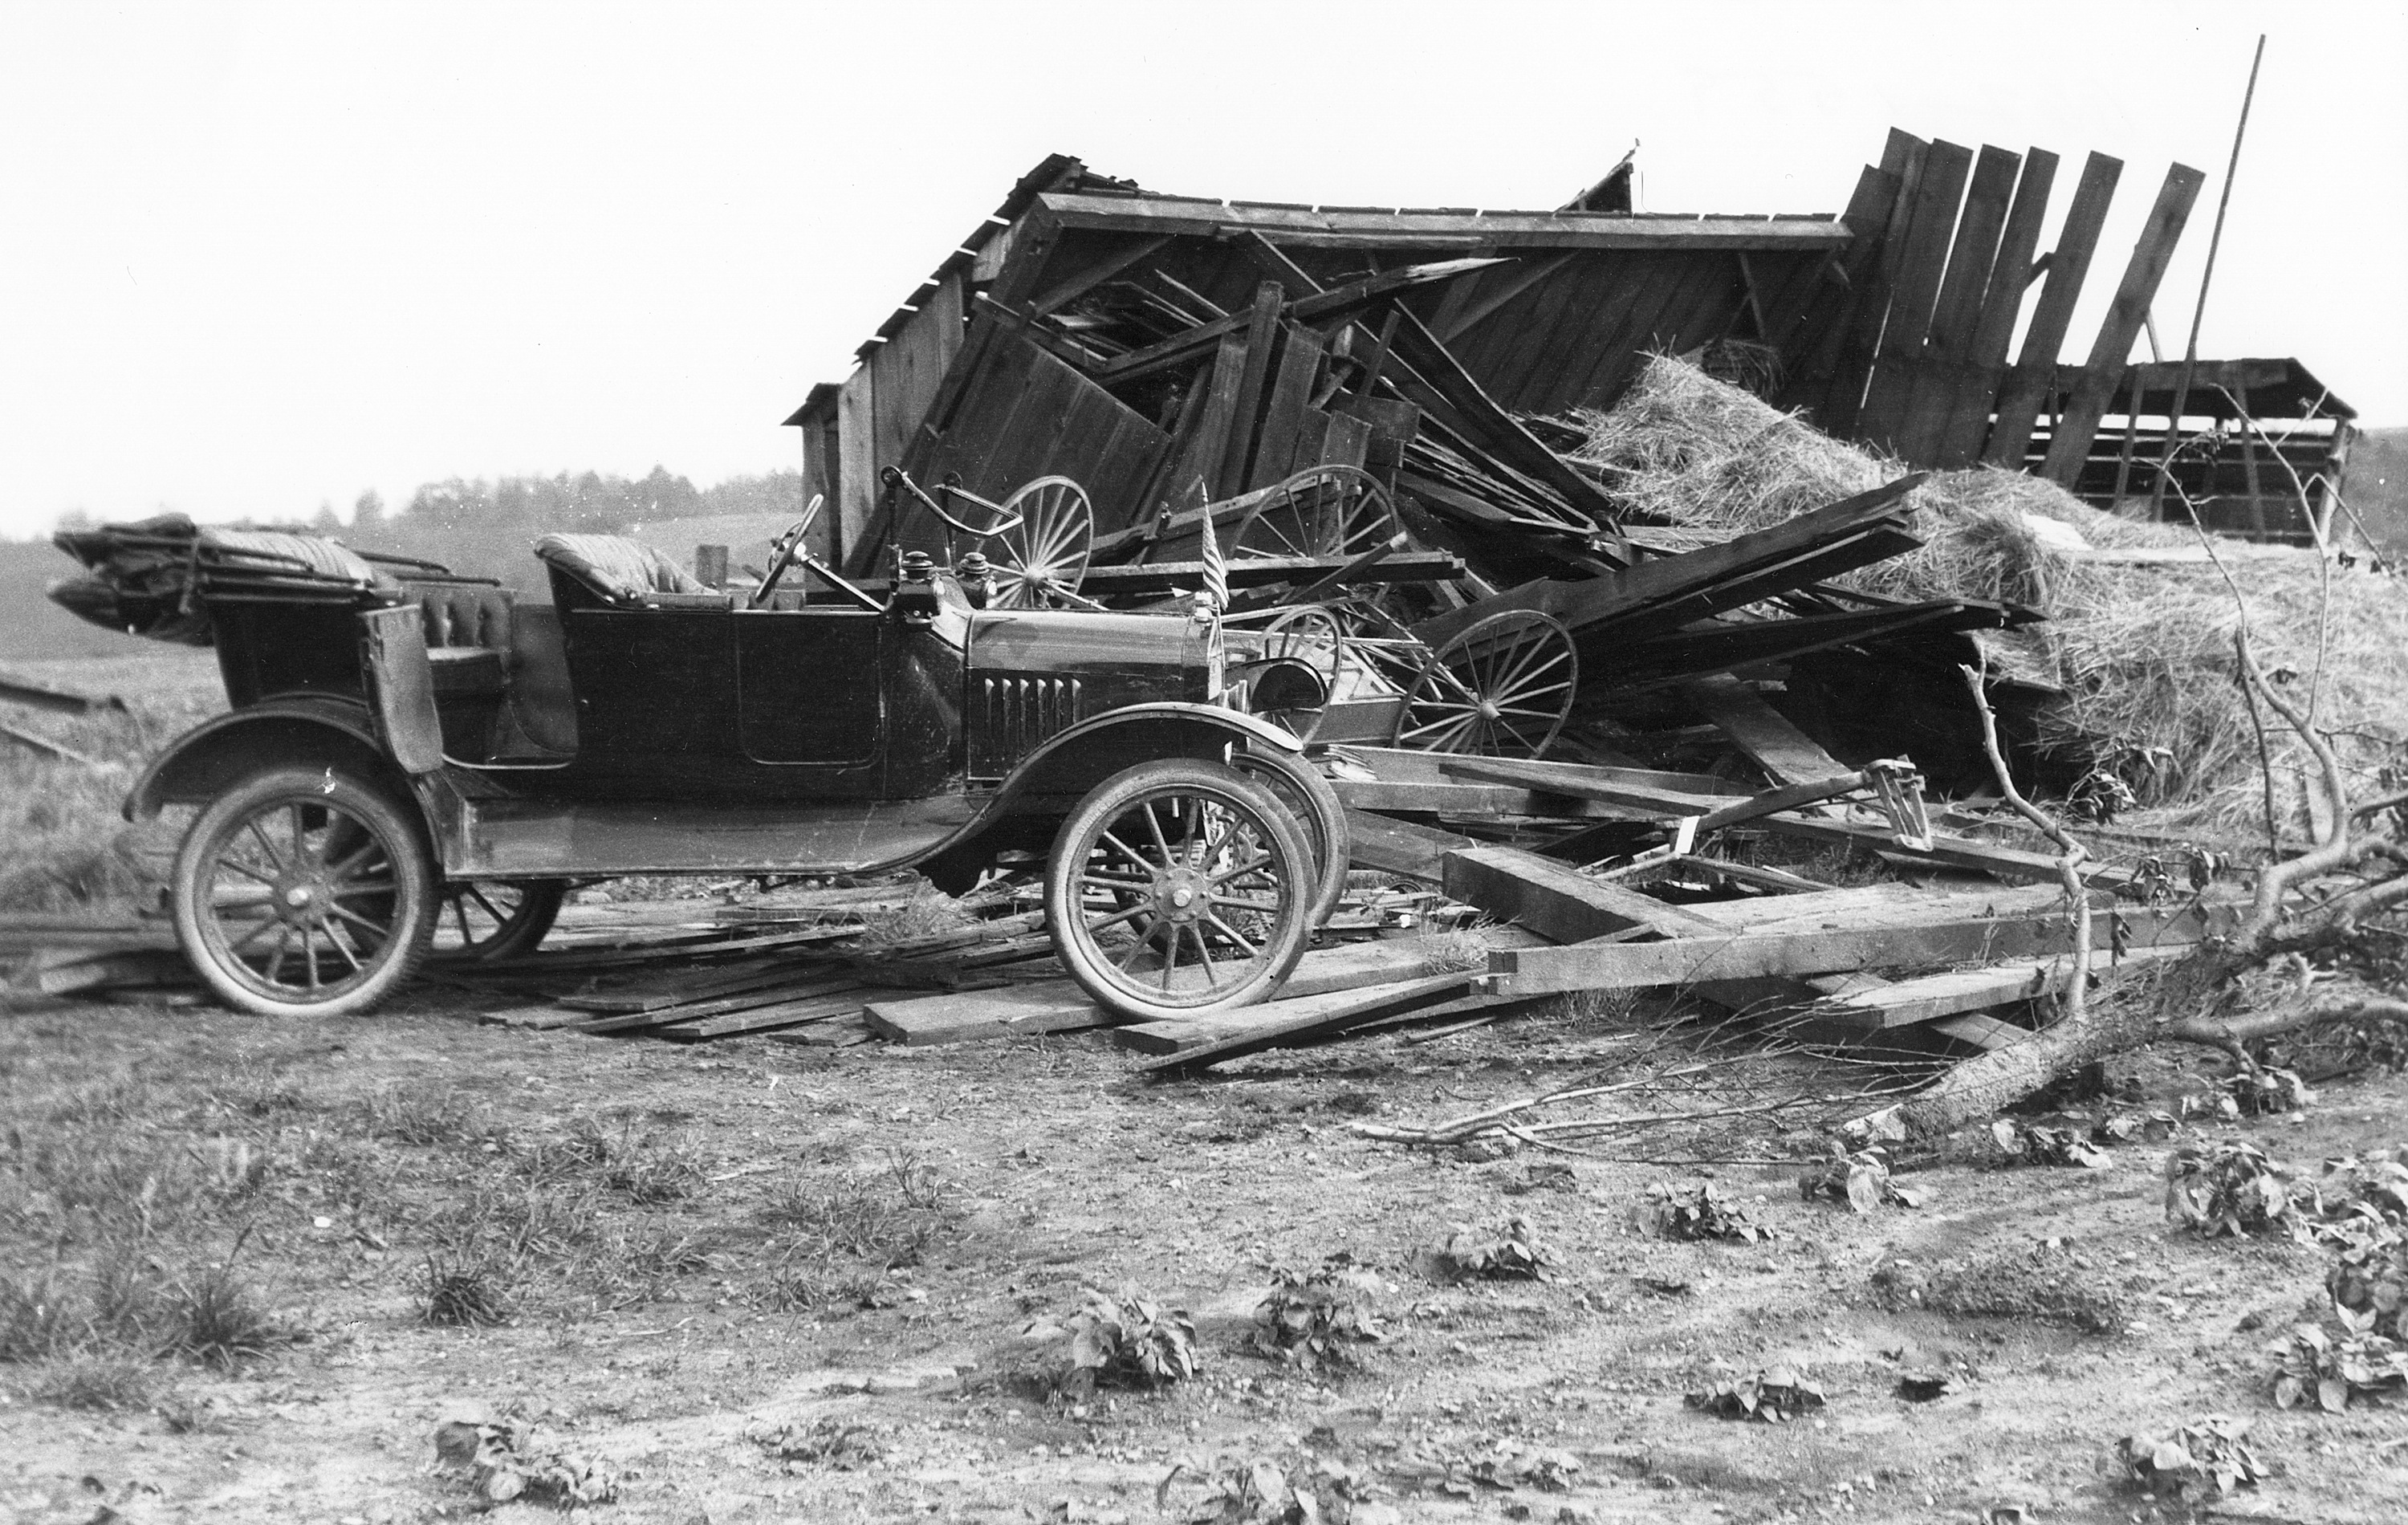 Eli Gallup's house after the Delhi tornado, 1917 image